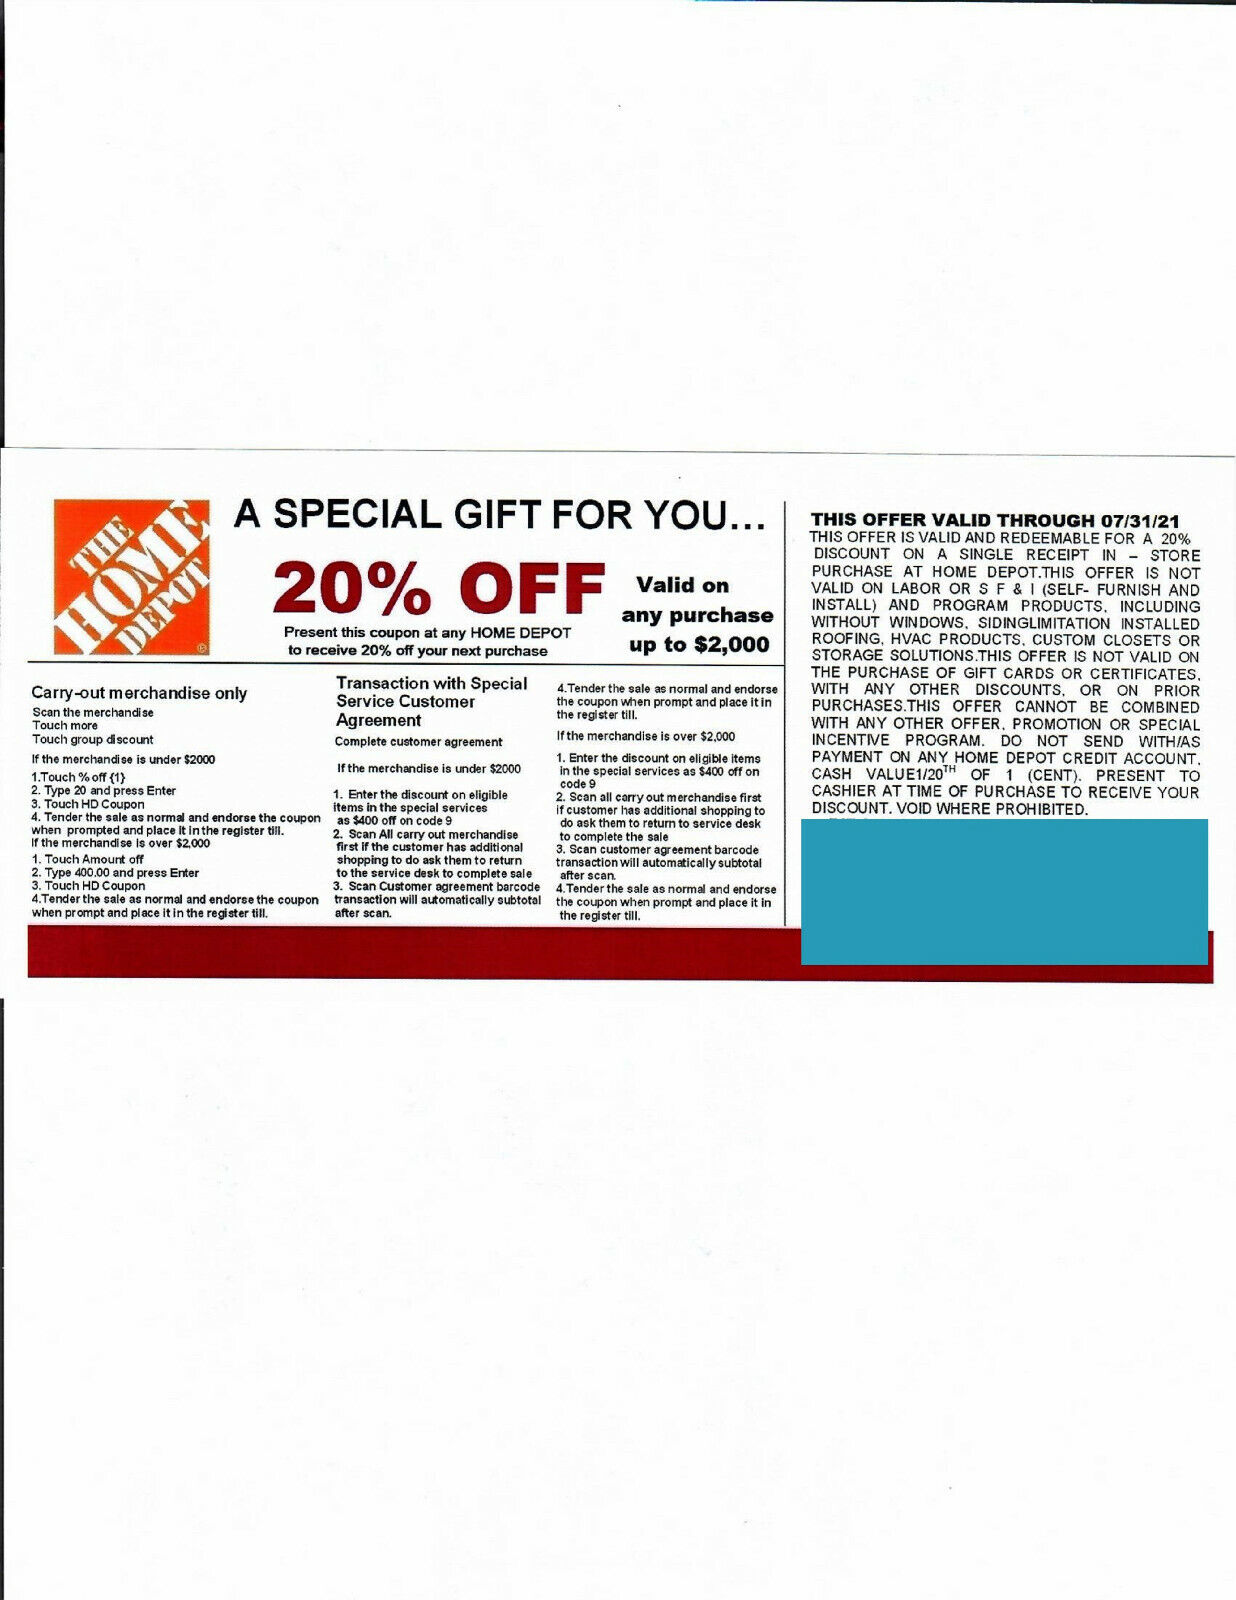 1 20 OFF HOME DEPOT Competitors Coupon At Lowe s Expires ---7/31/21 - $5.00